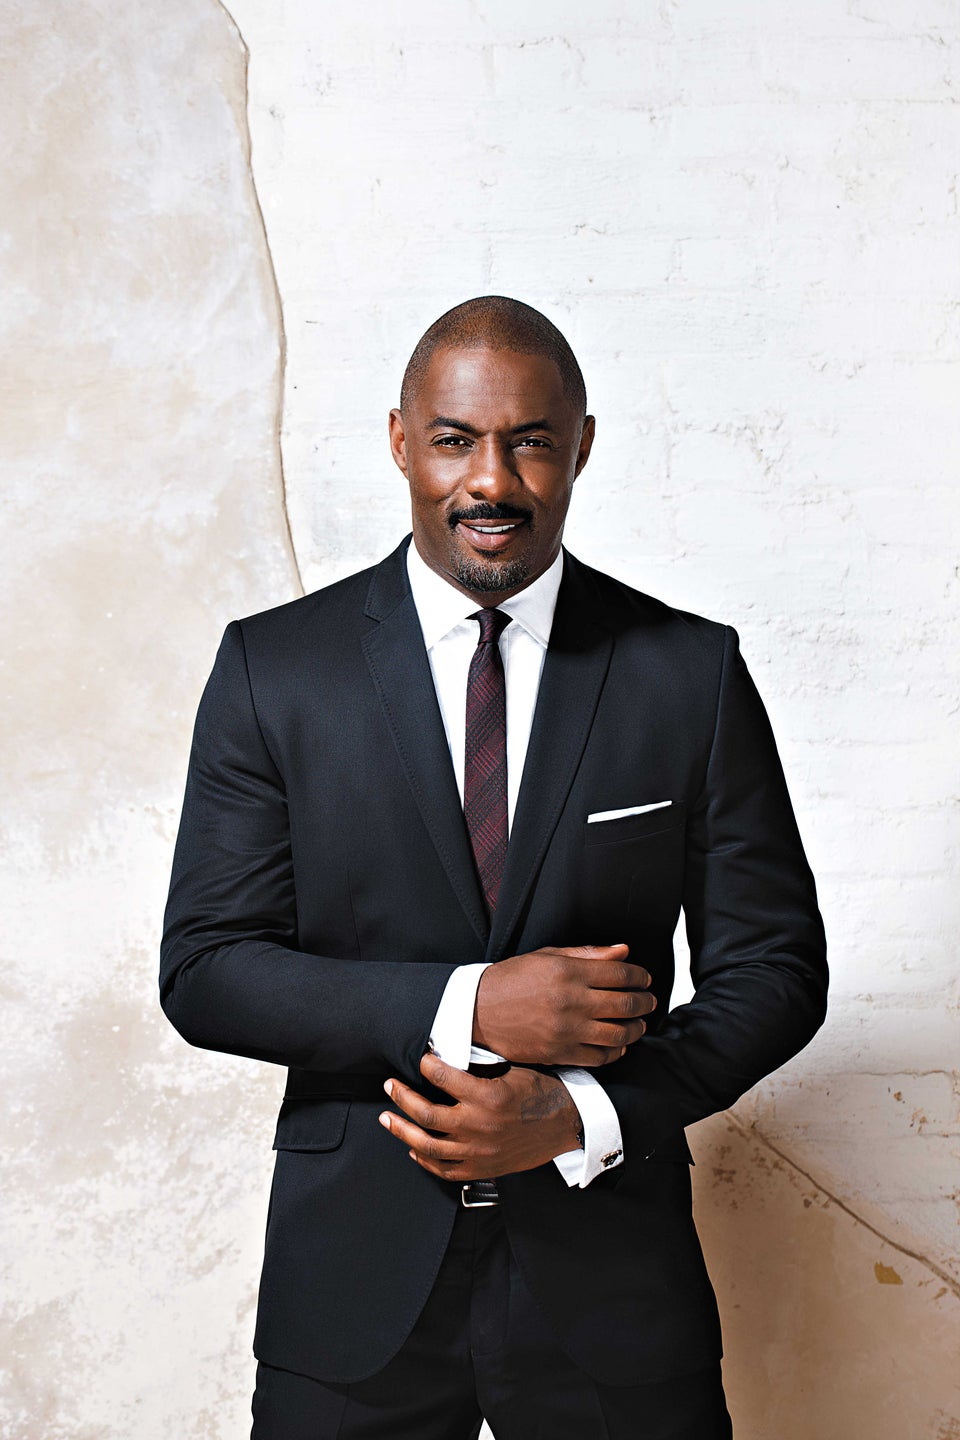 Idris Elba, Shemar Moore, and Others Make PEOPLE's Sexiest Man List